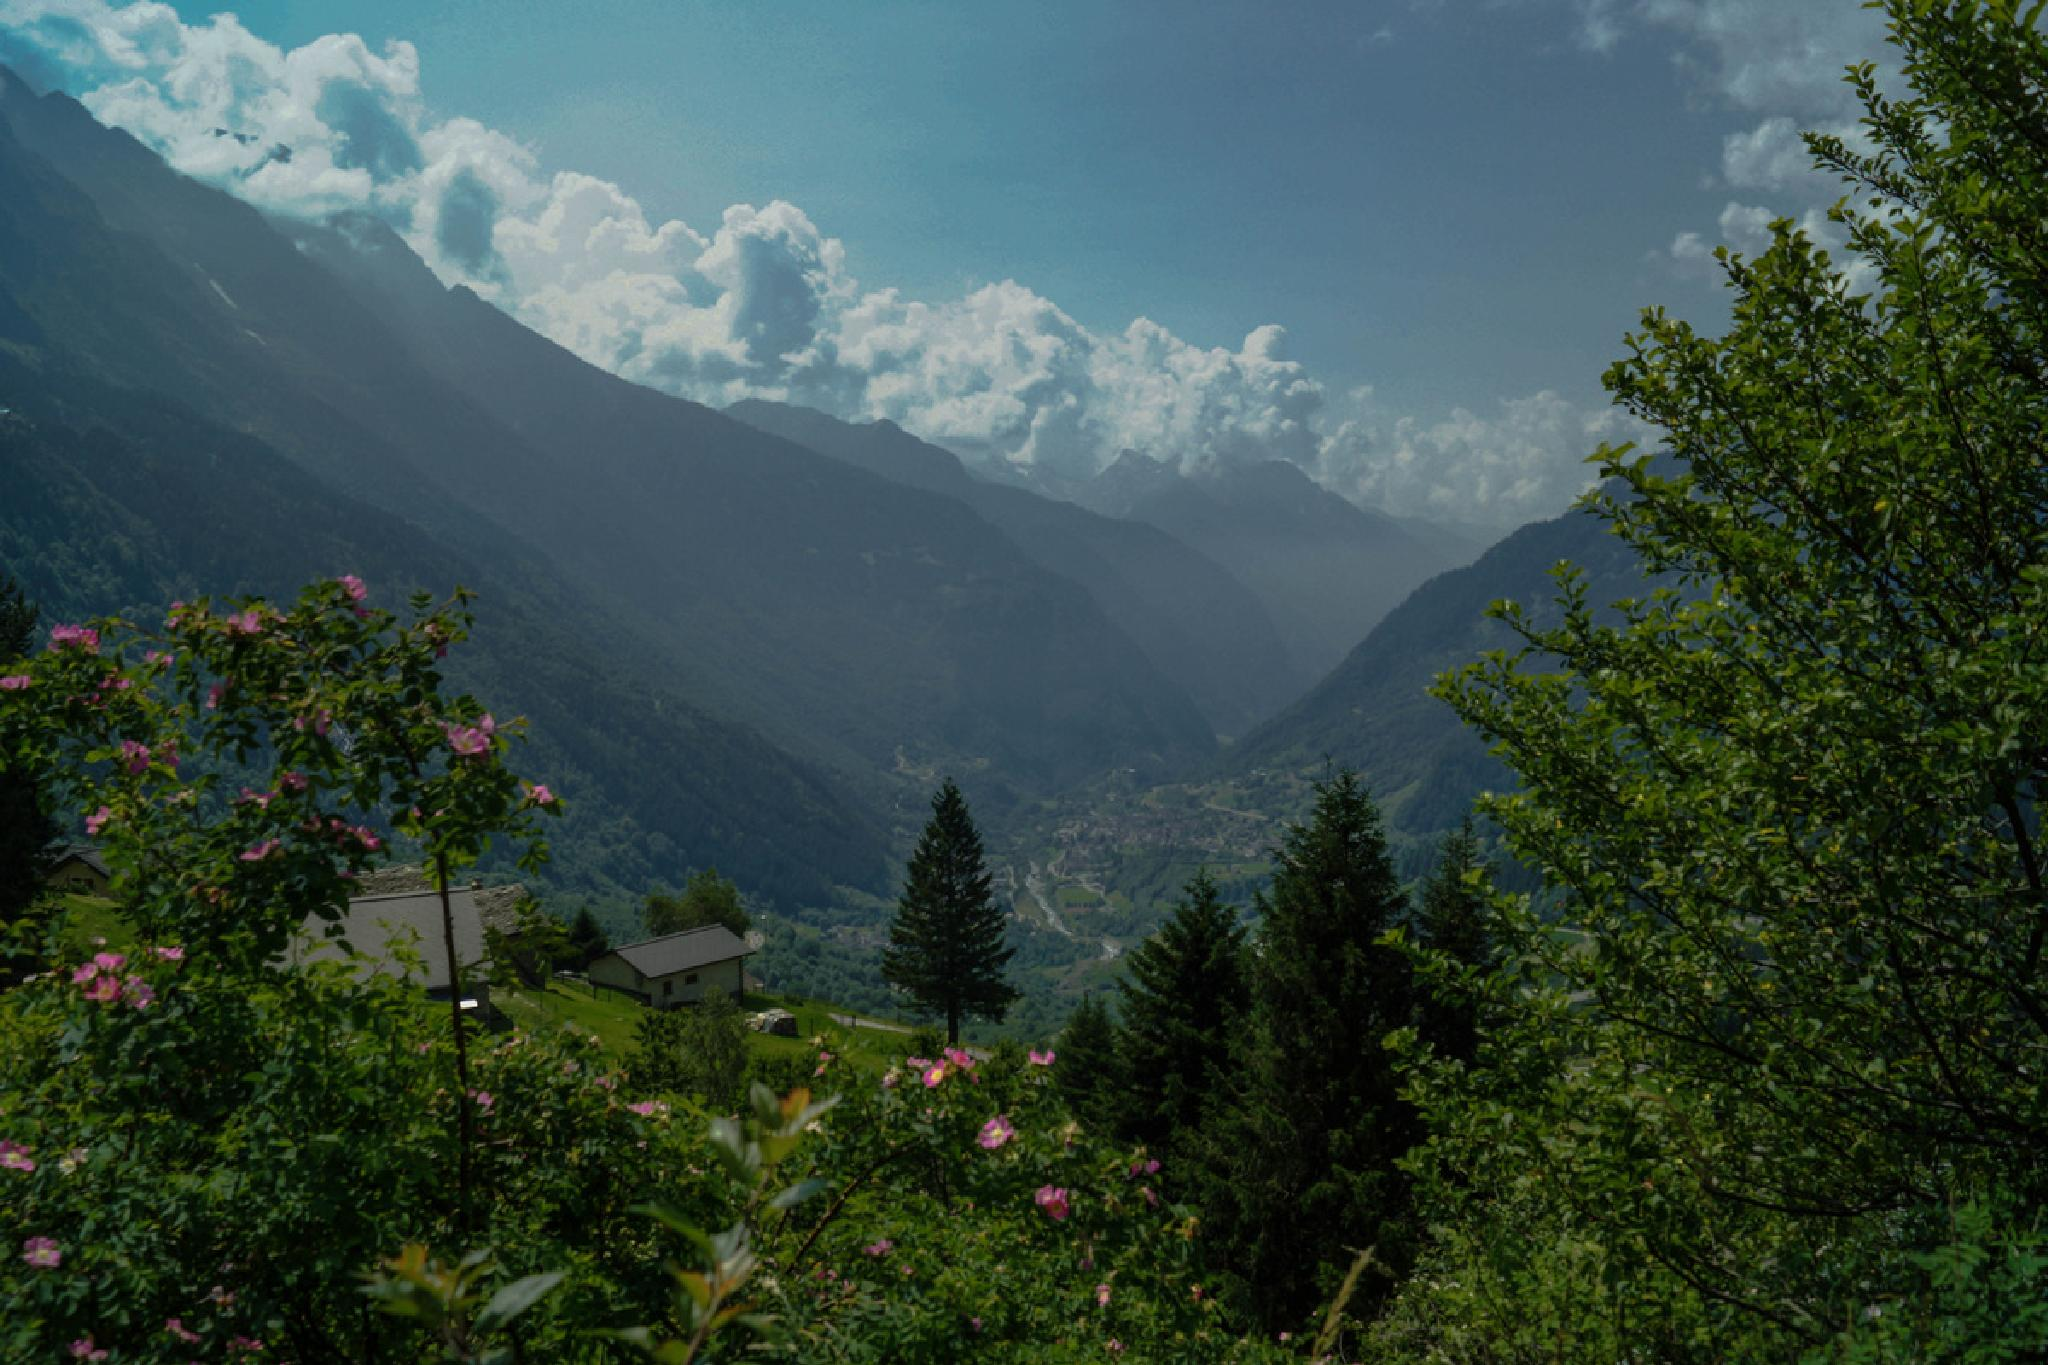 Looking out of the Alps by Jane.lindbladh